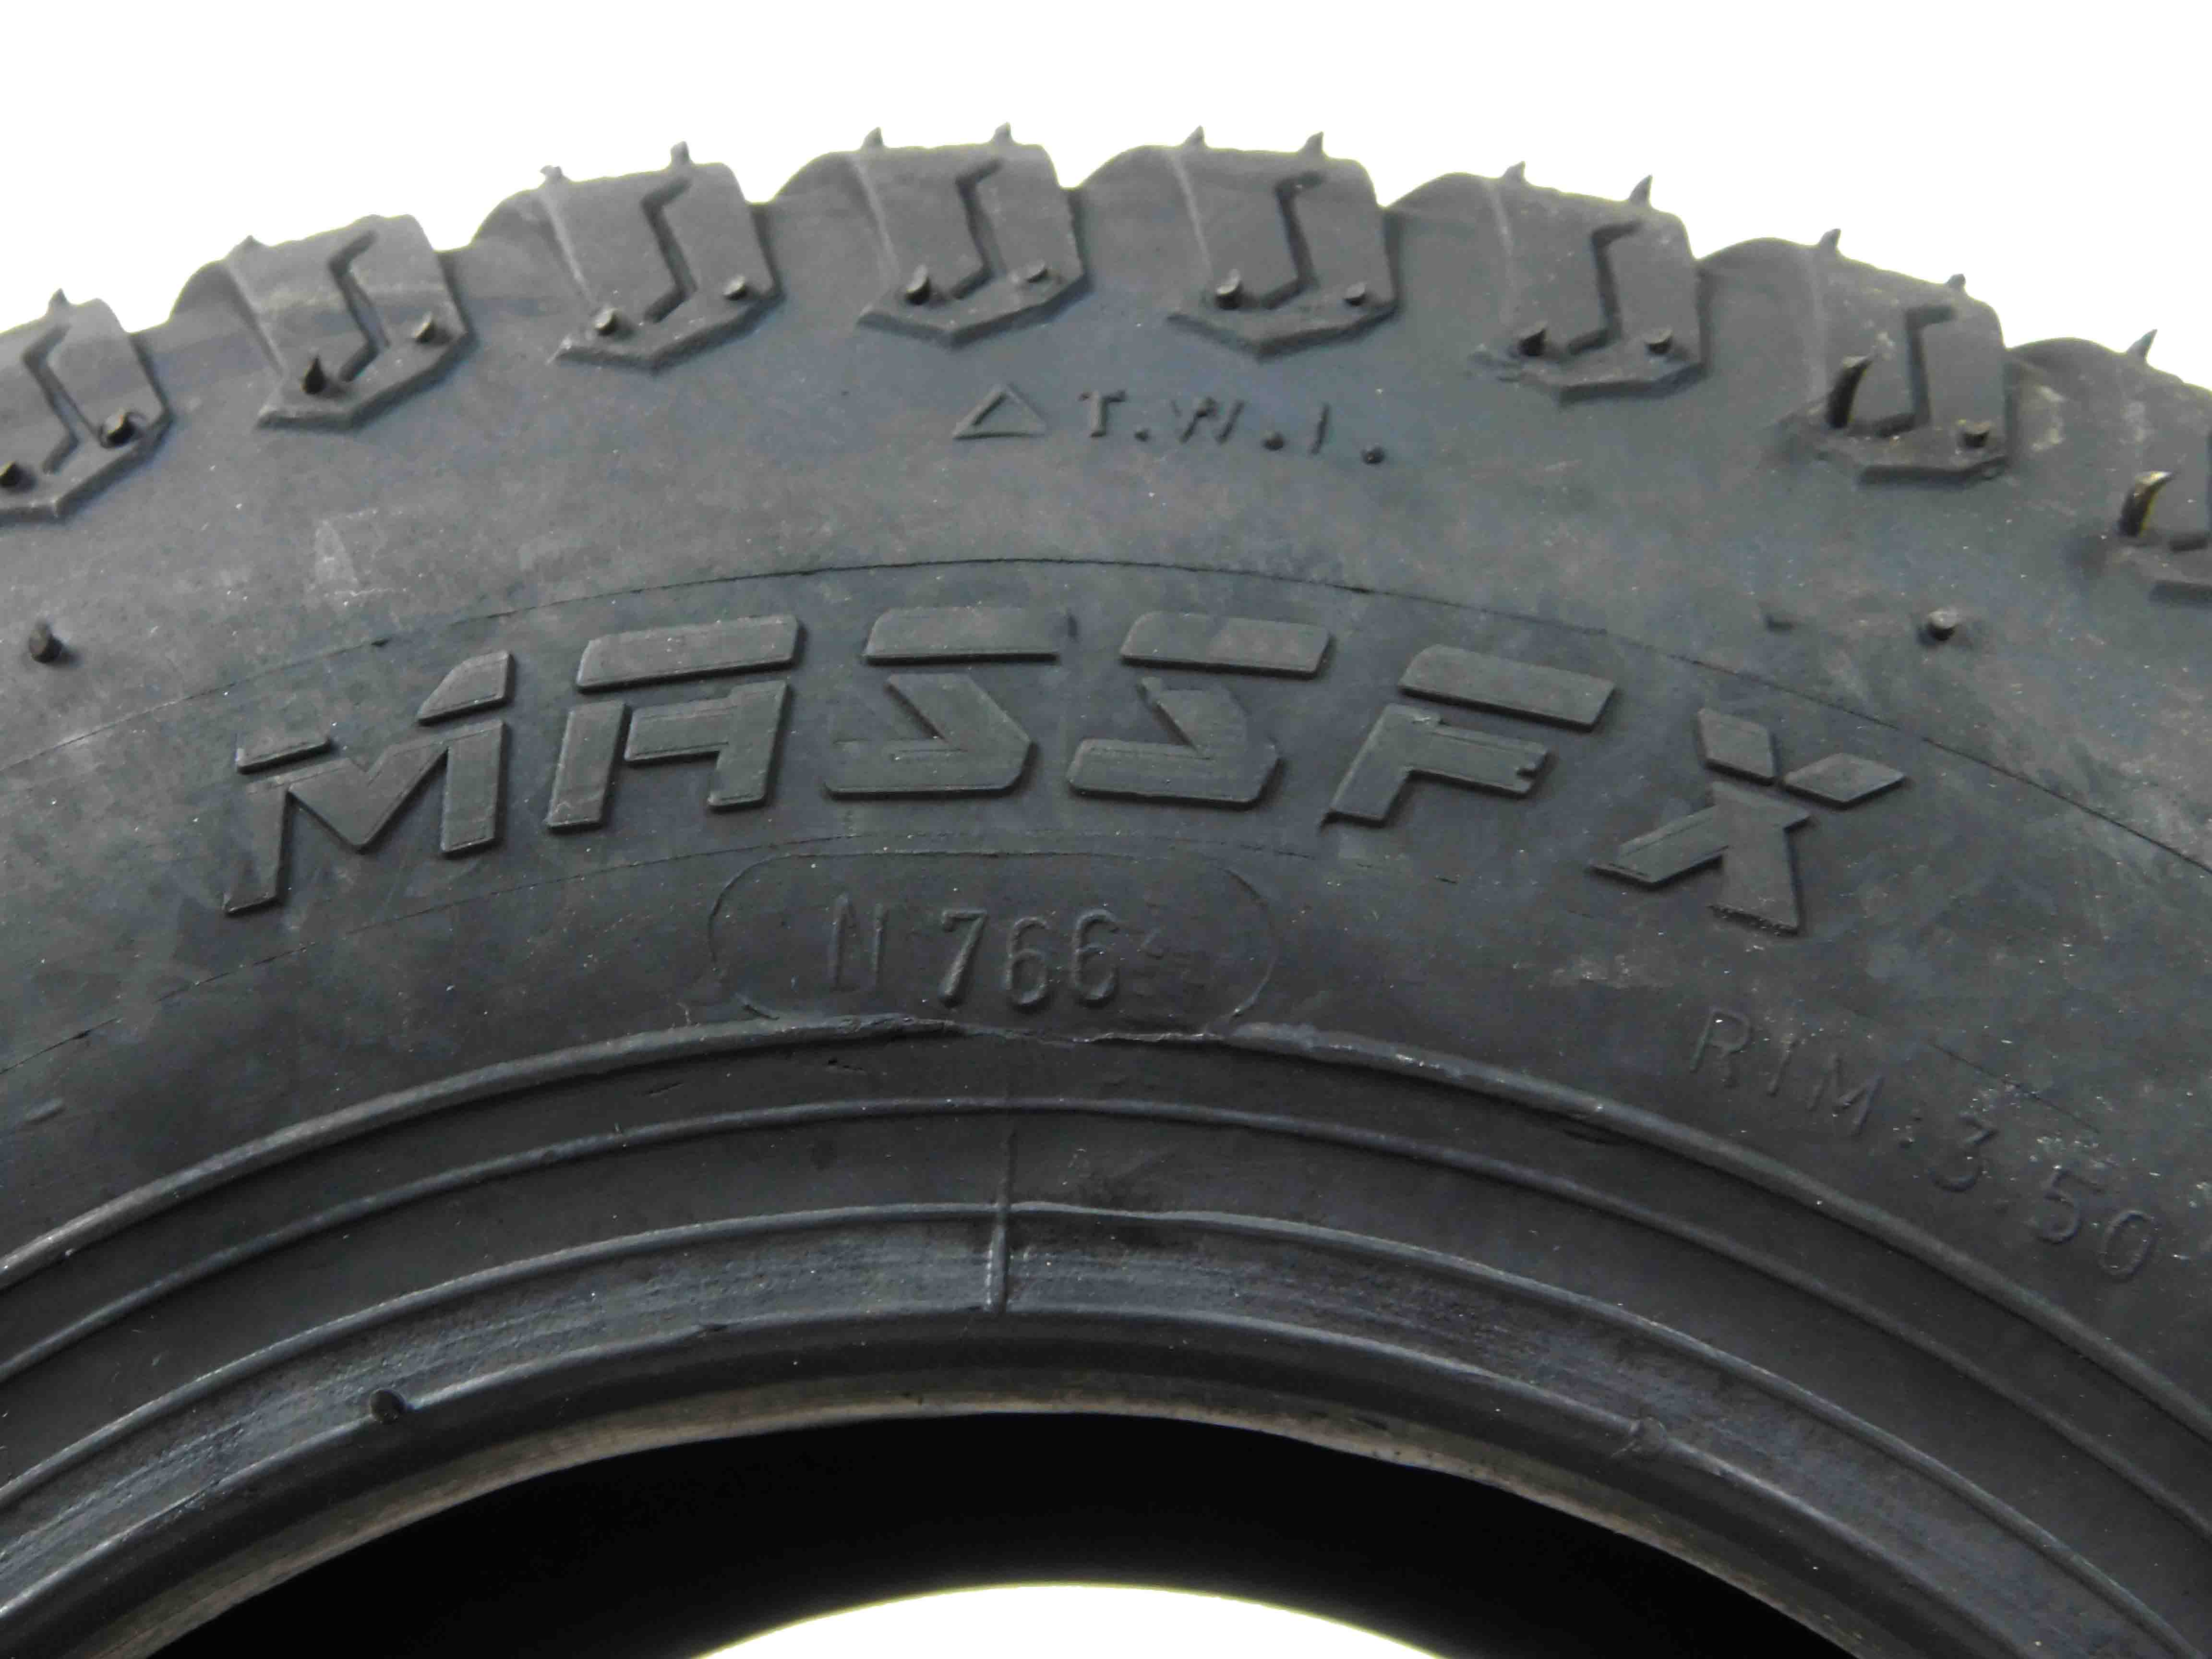 MASSFX-13x5-6-Lawn-Mower-Tires-4ply-image-3